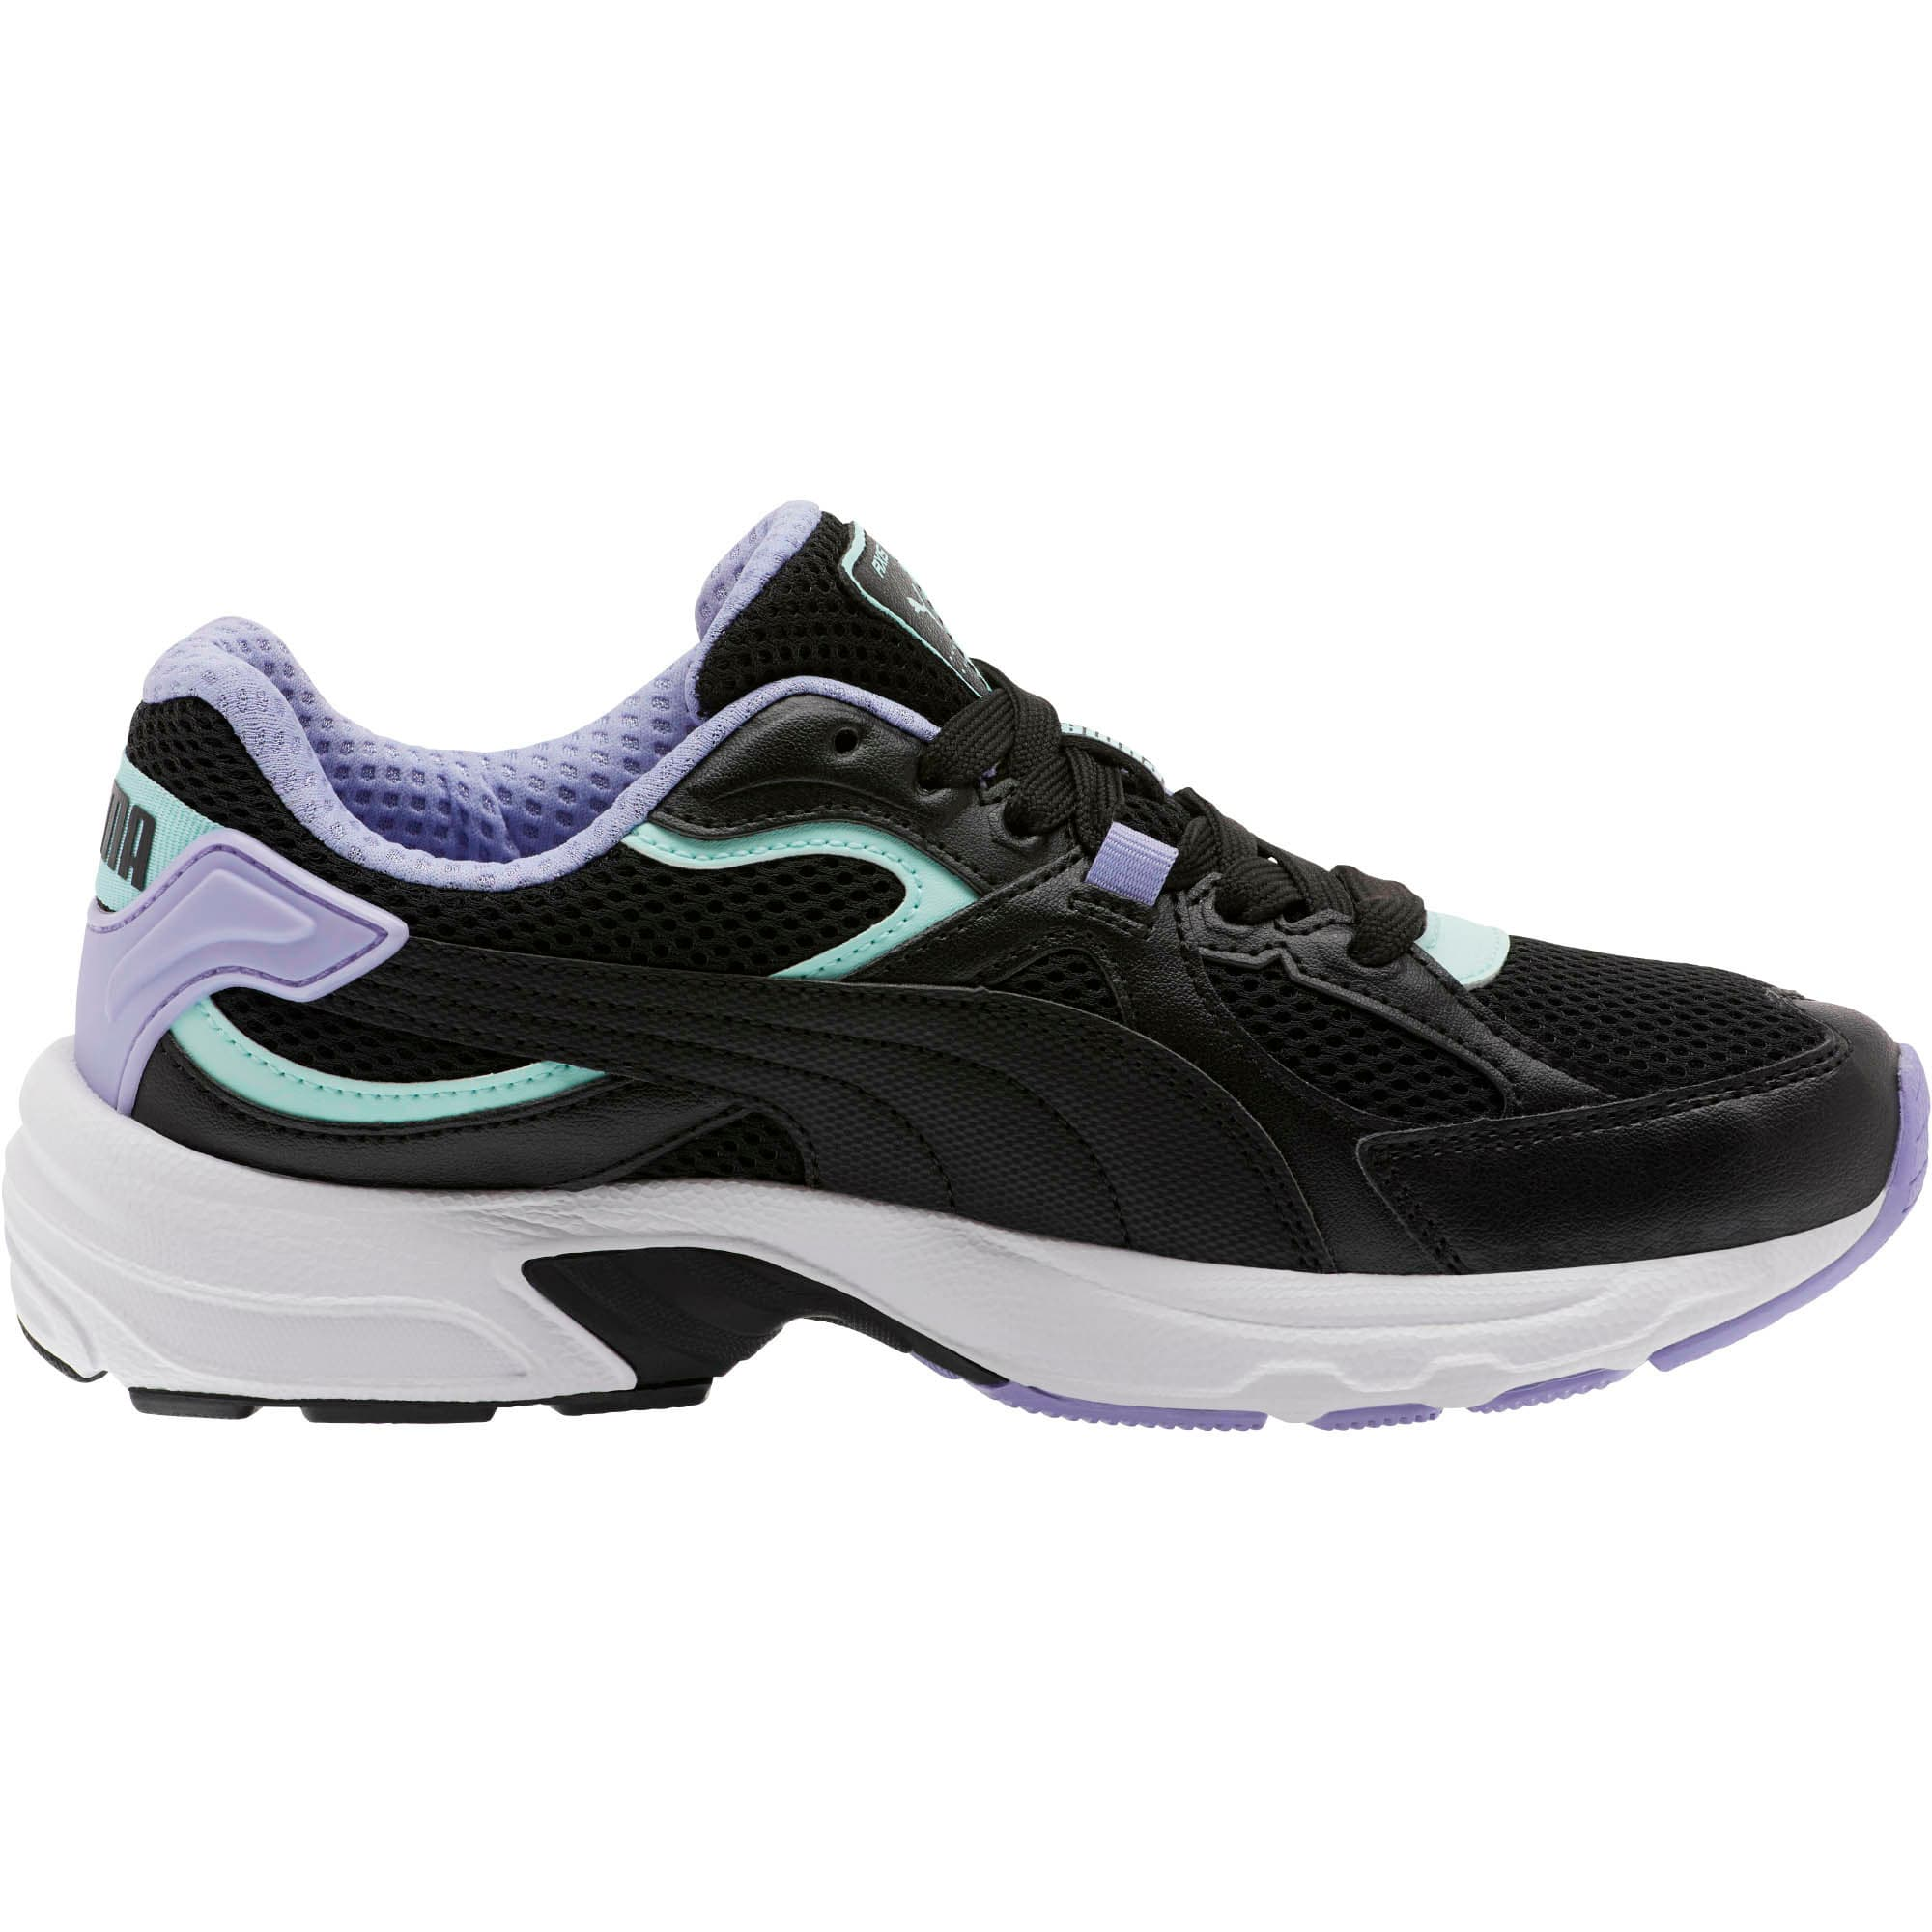 Thumbnail 4 of Axis Plus 90s Women's Sneakers, Black-F Aqua-S Lavender-Wht, medium